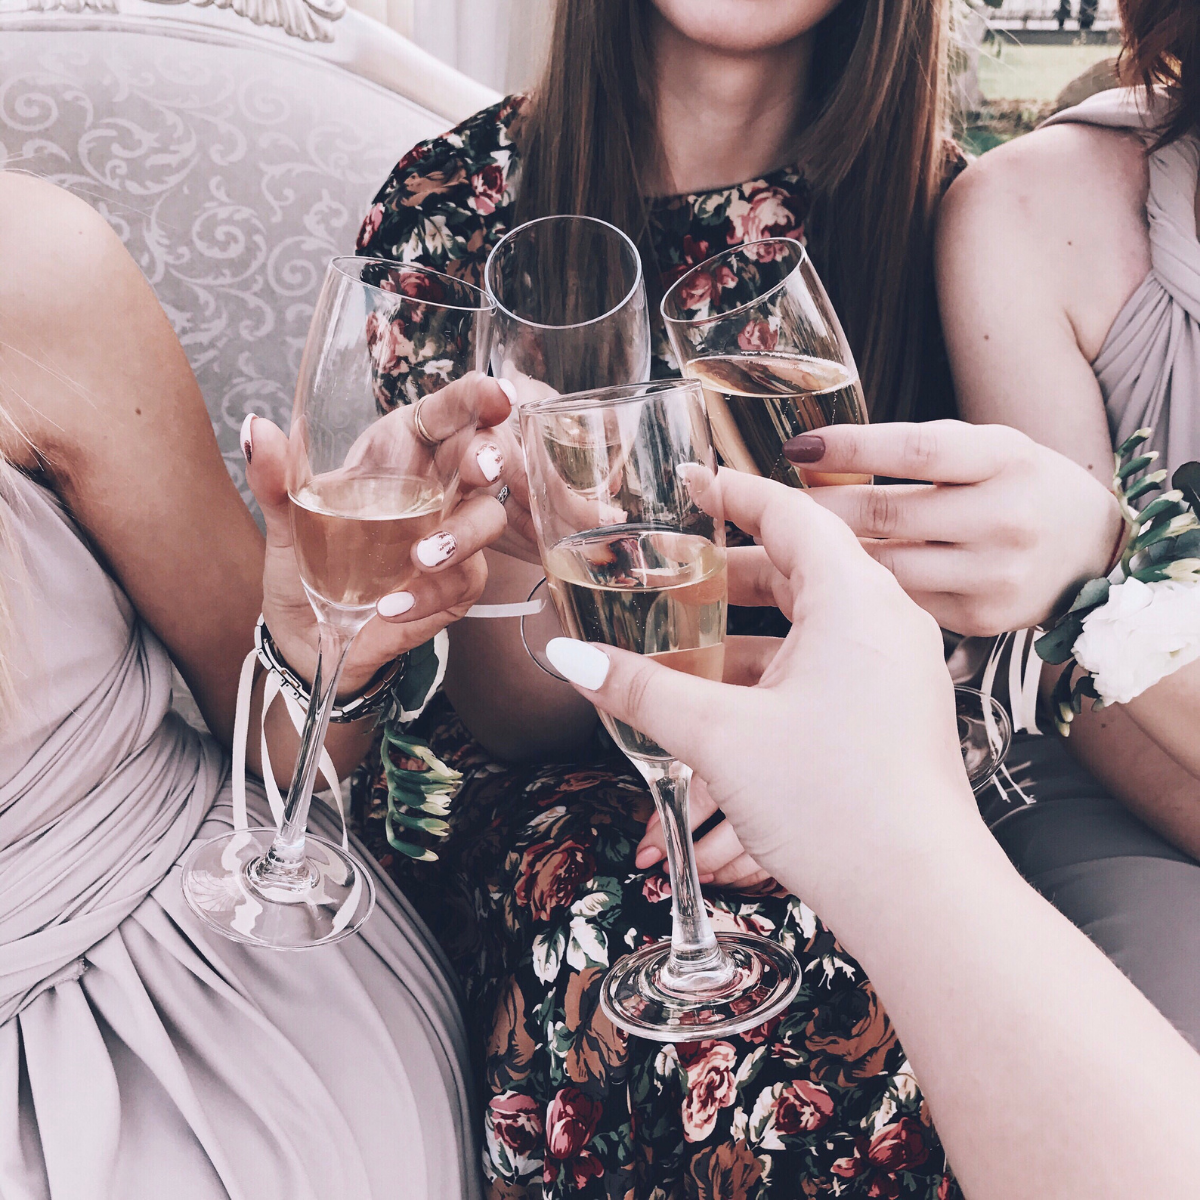 How to throw a surprise party on a budget